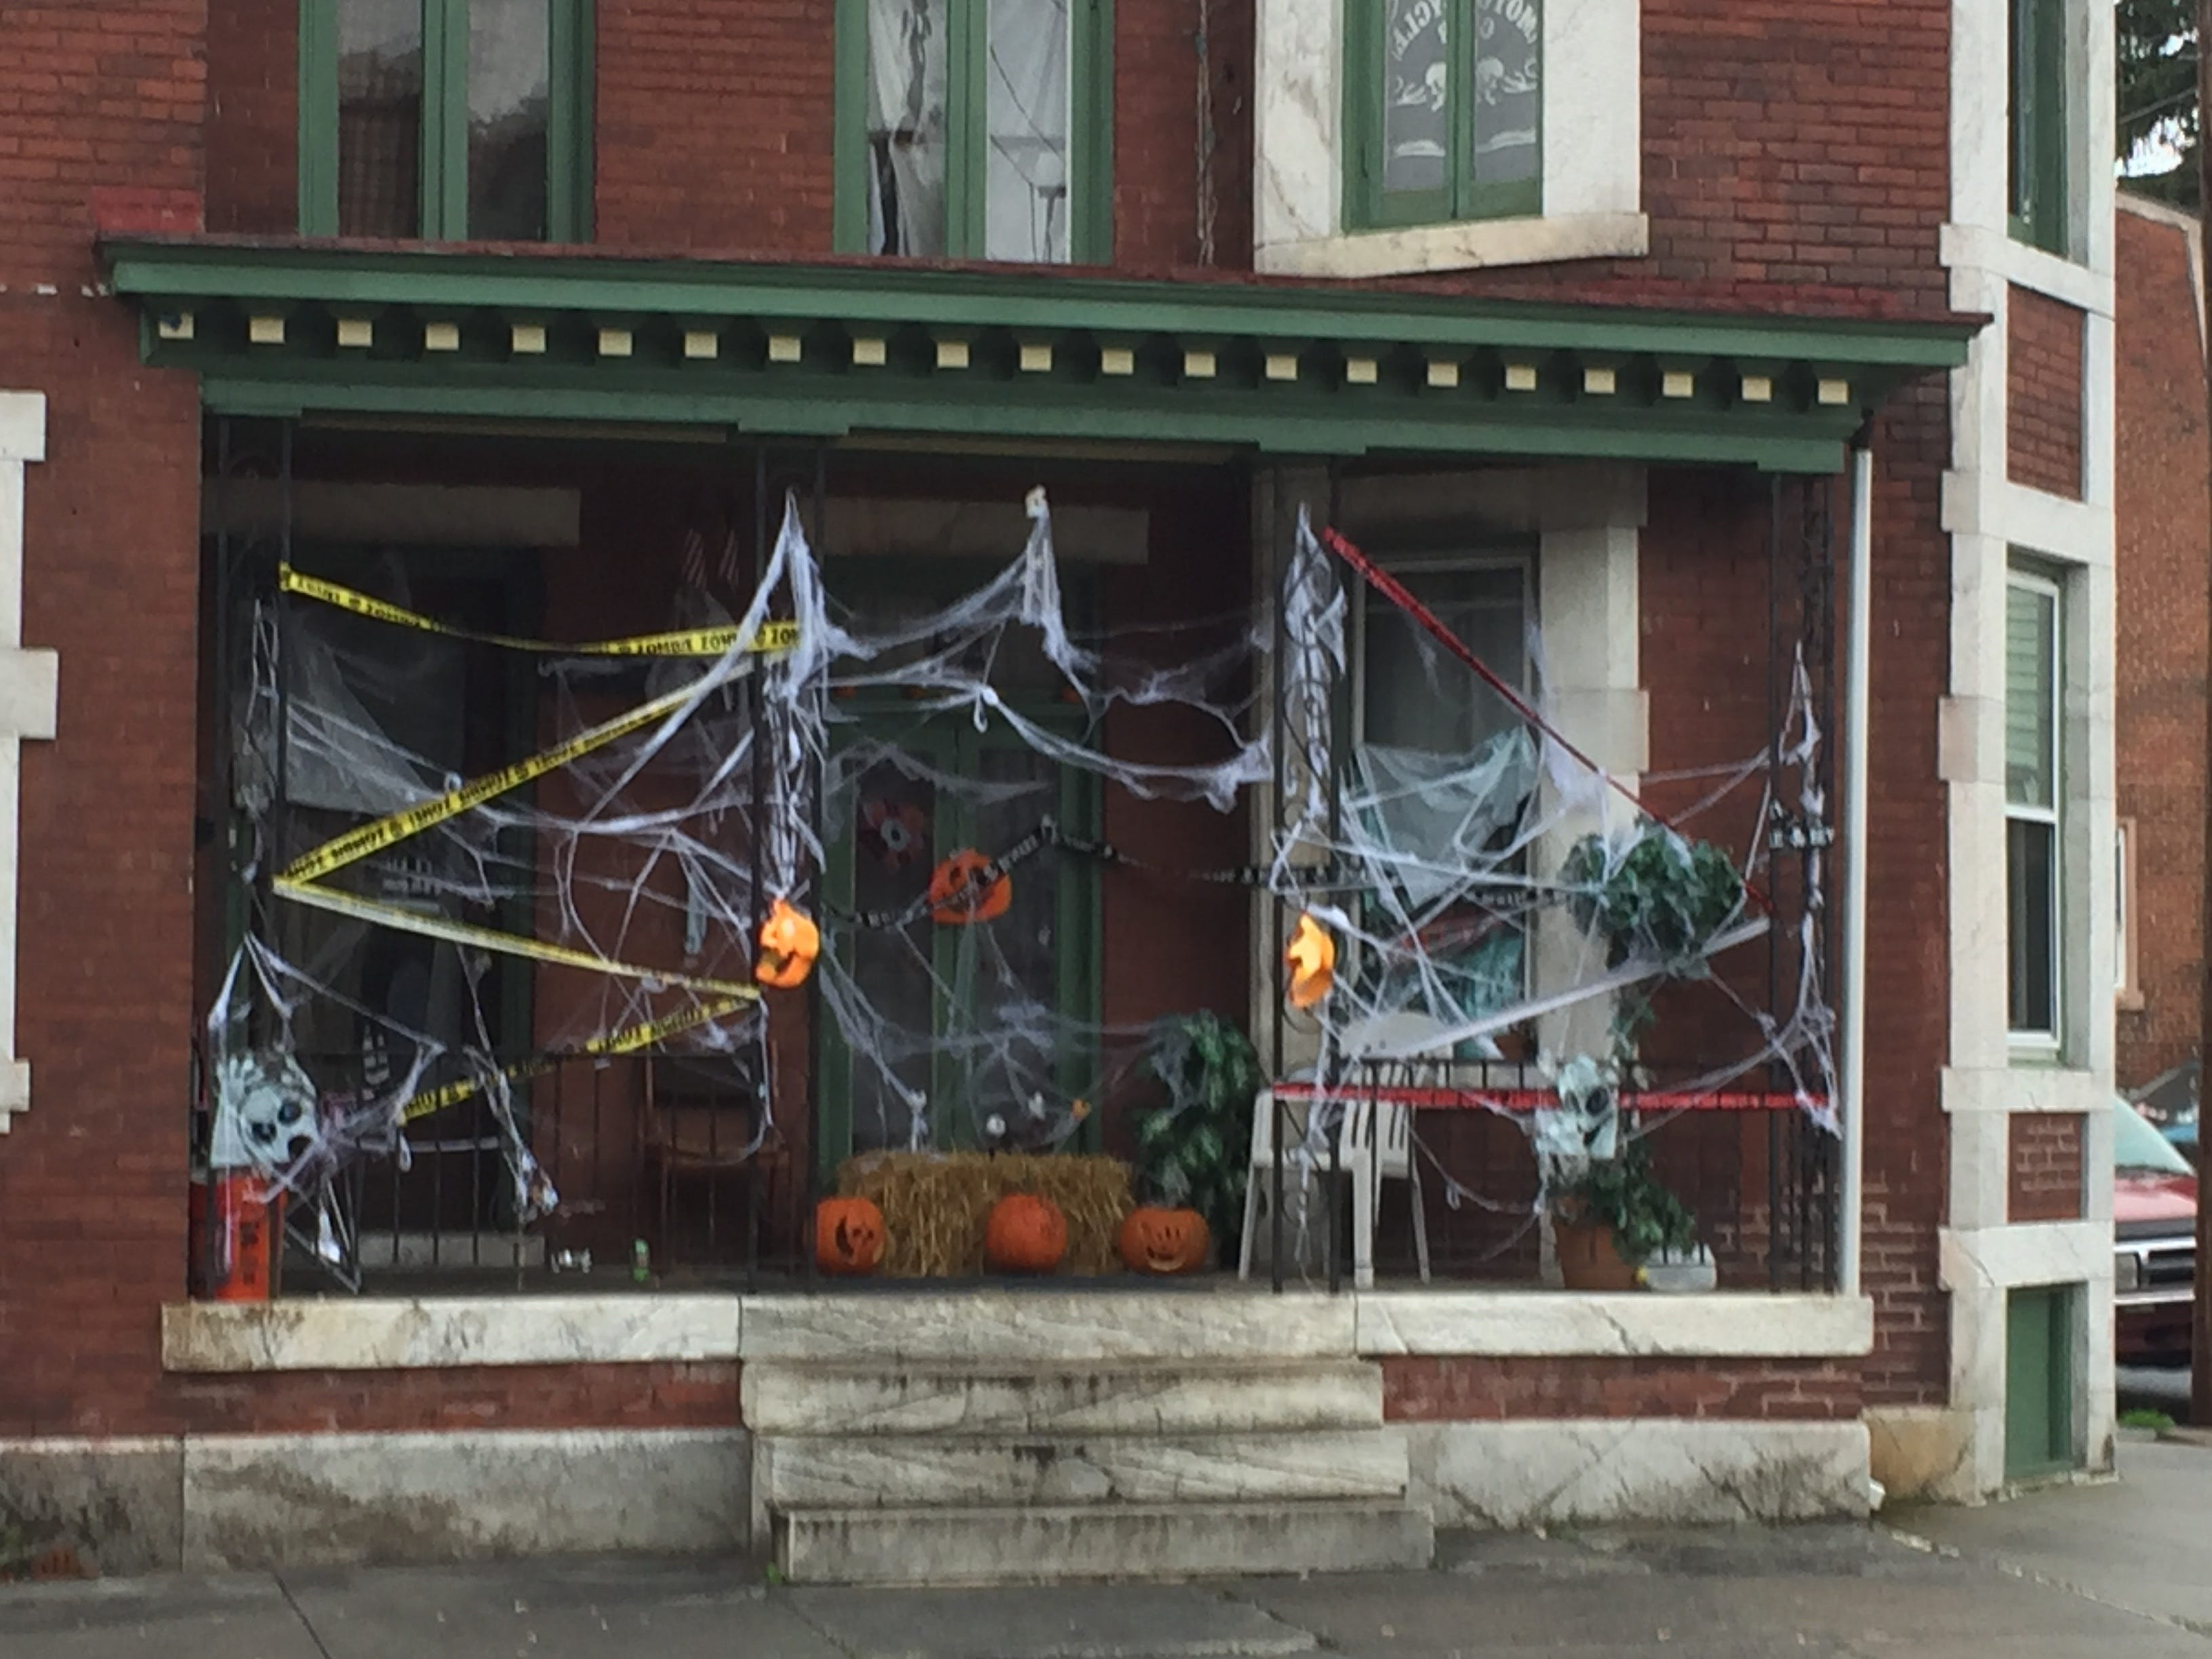 Don't get tangled up in the webs at this North Eighth Street row in Lebanon, complete with police-style tape.